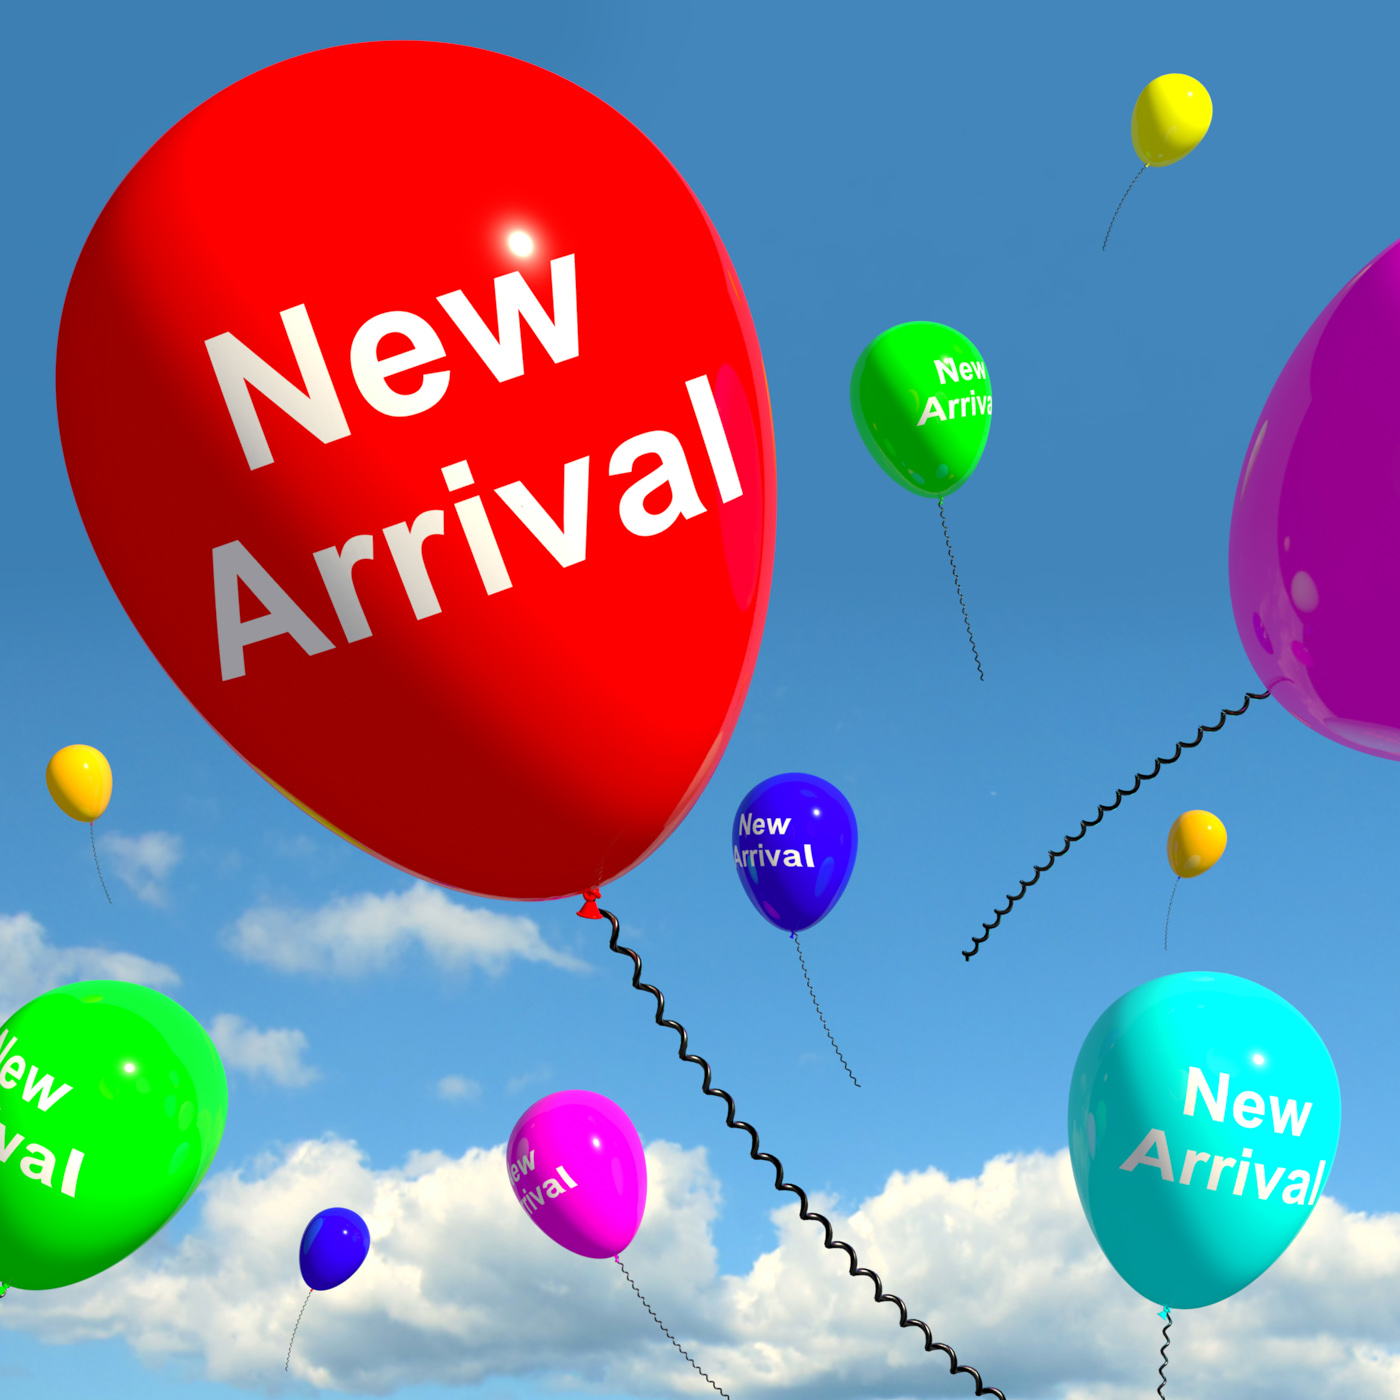 New arrival balloons in the sky showing latest product online or new b photo